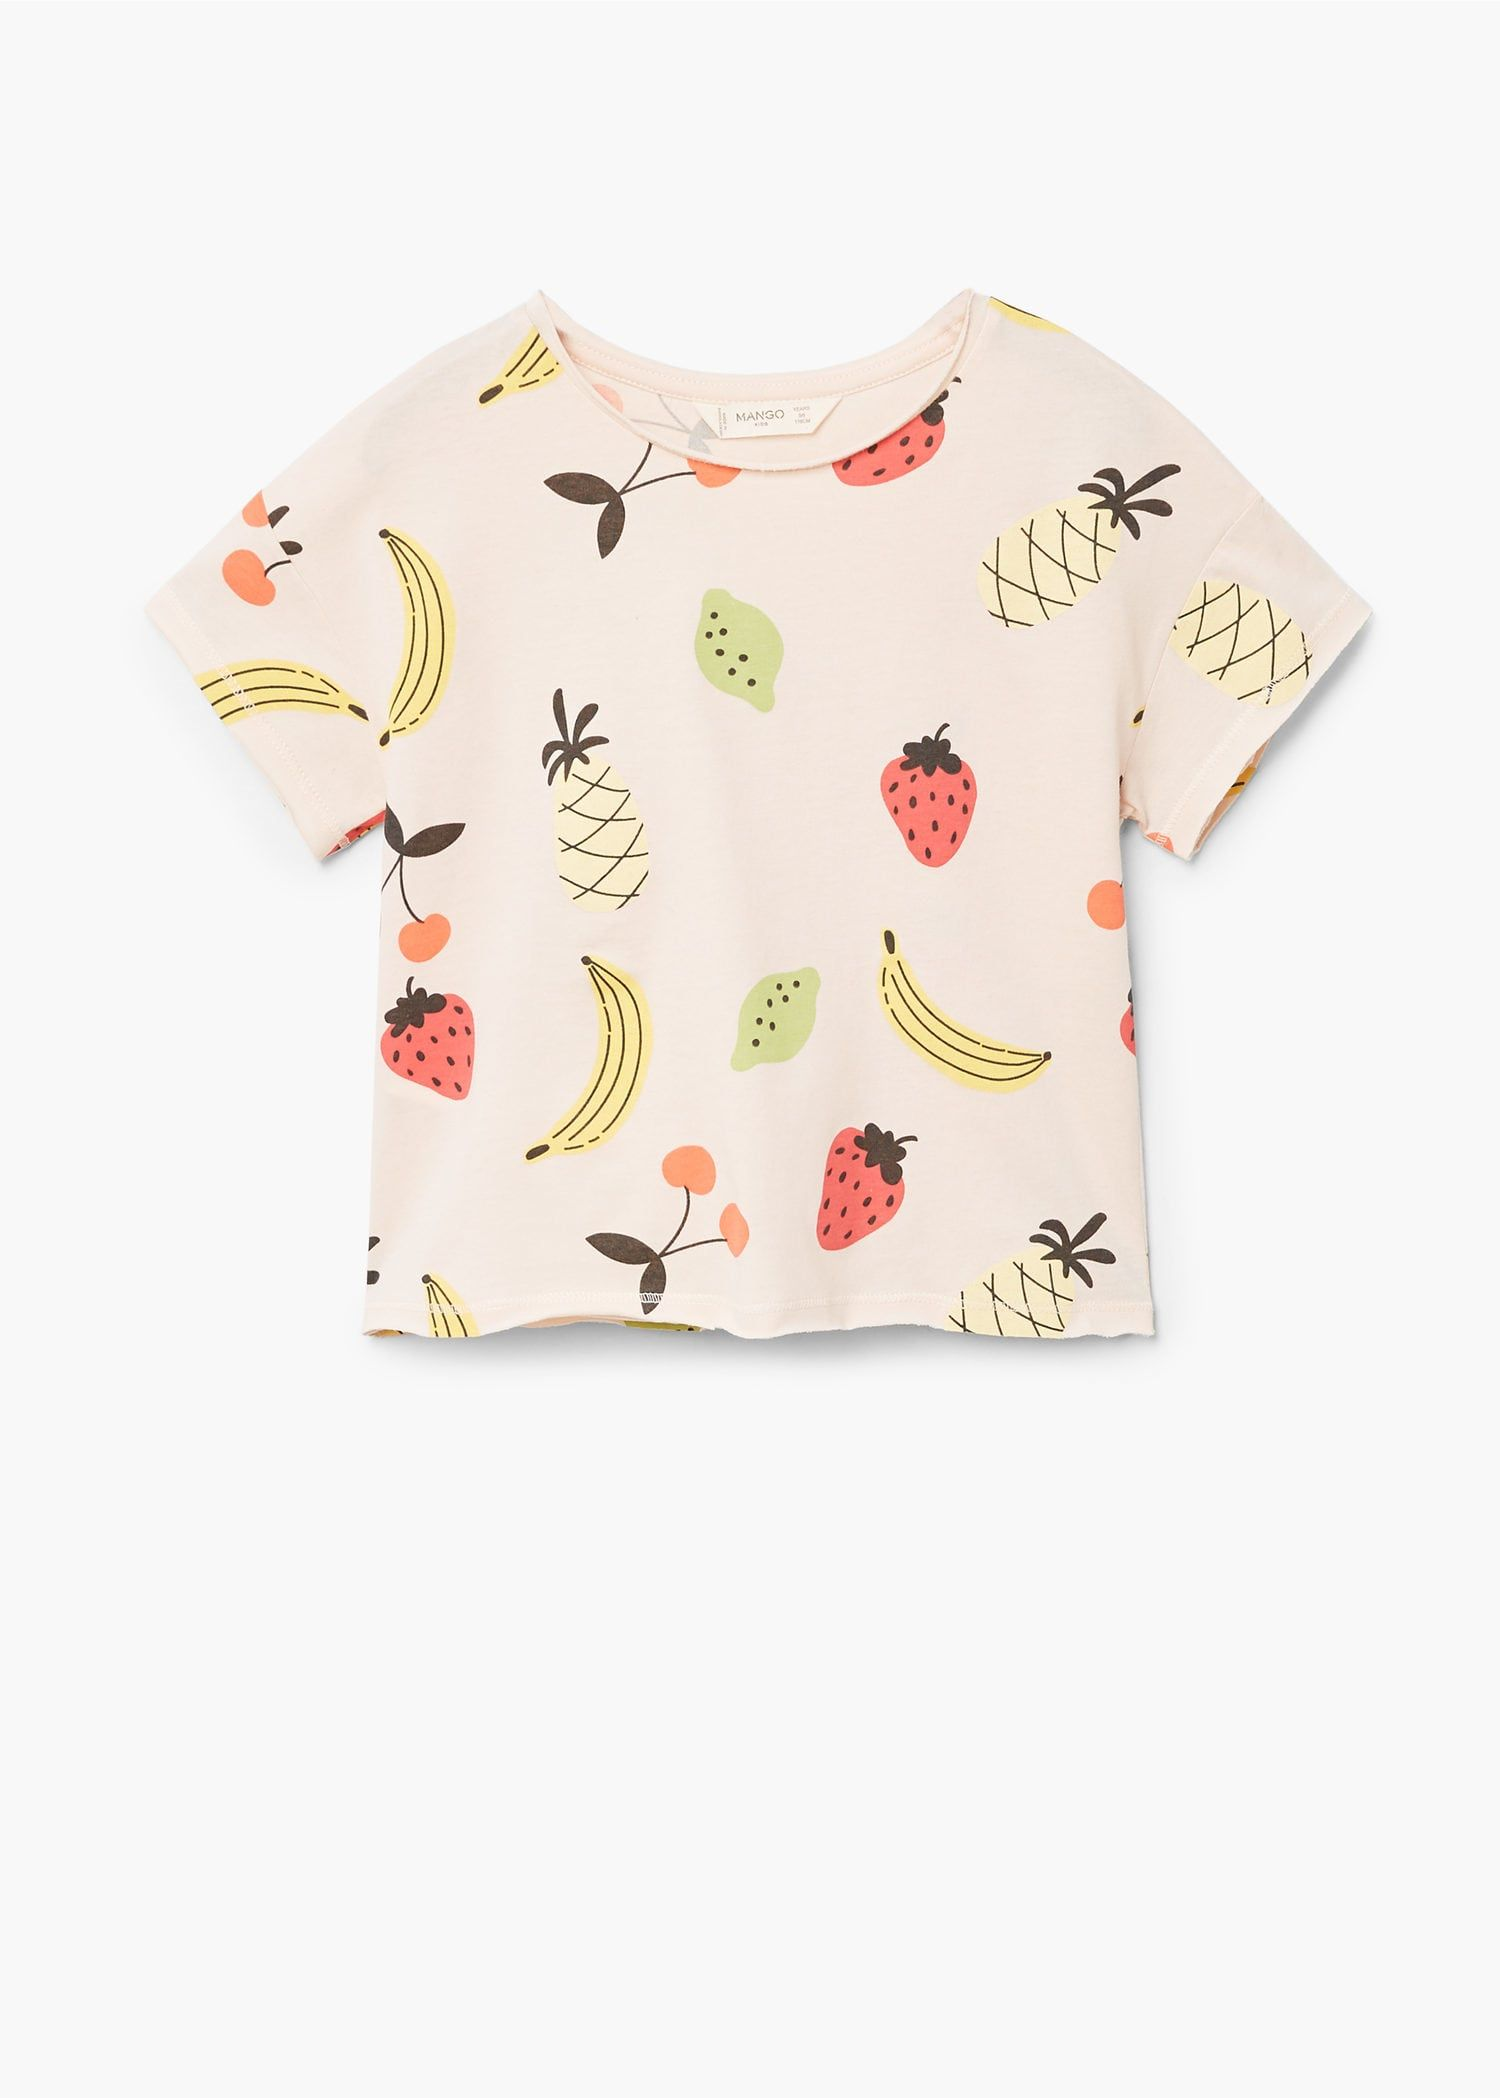 1 Set Baby Toddler Boys Short Sleeve Clothes Tee+Short Pants Fruit Print Outfits